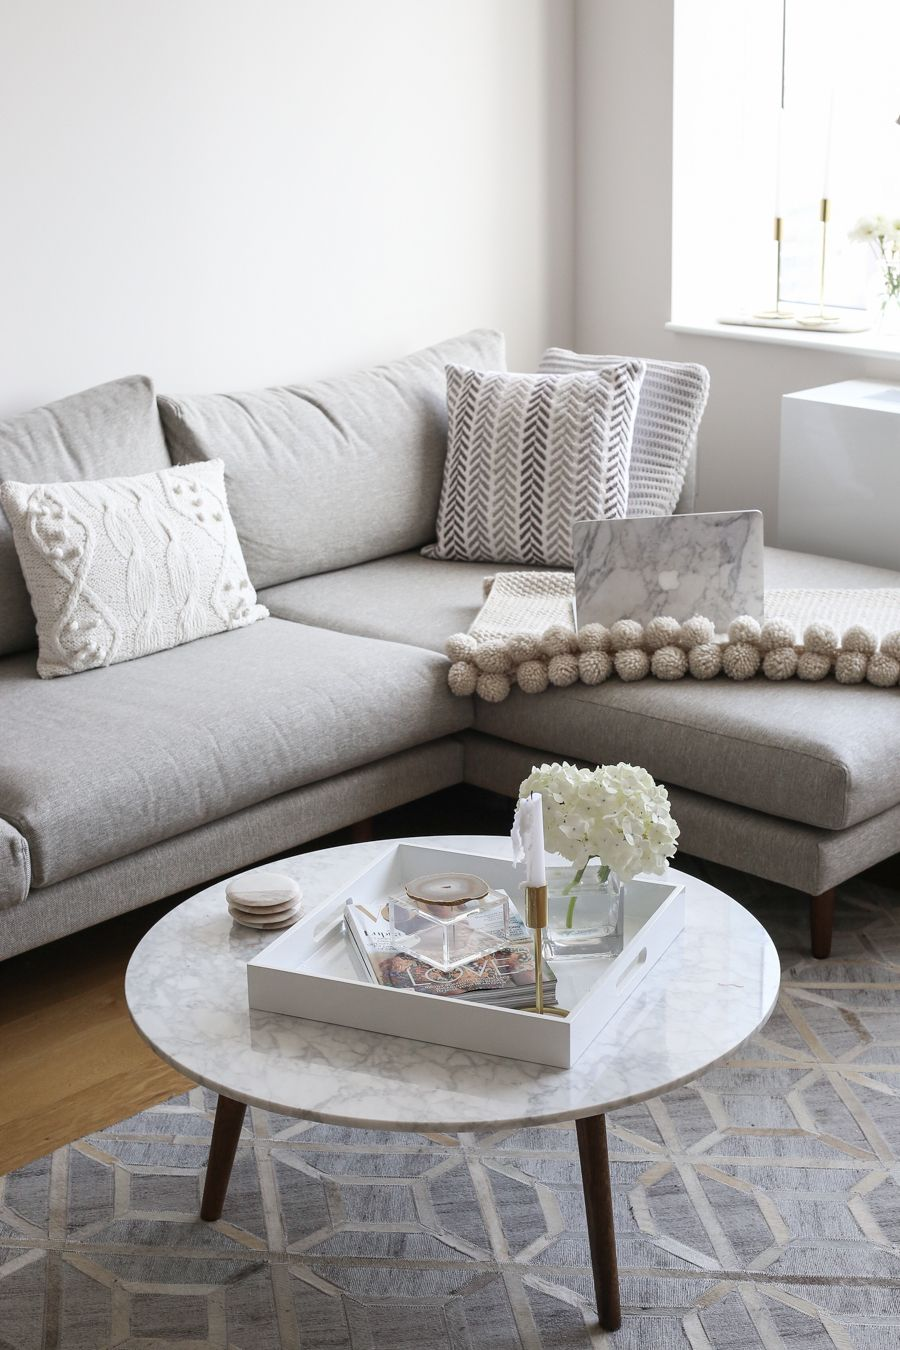 Designs For Sofas For The Living Room: My NYC Living Room With Article